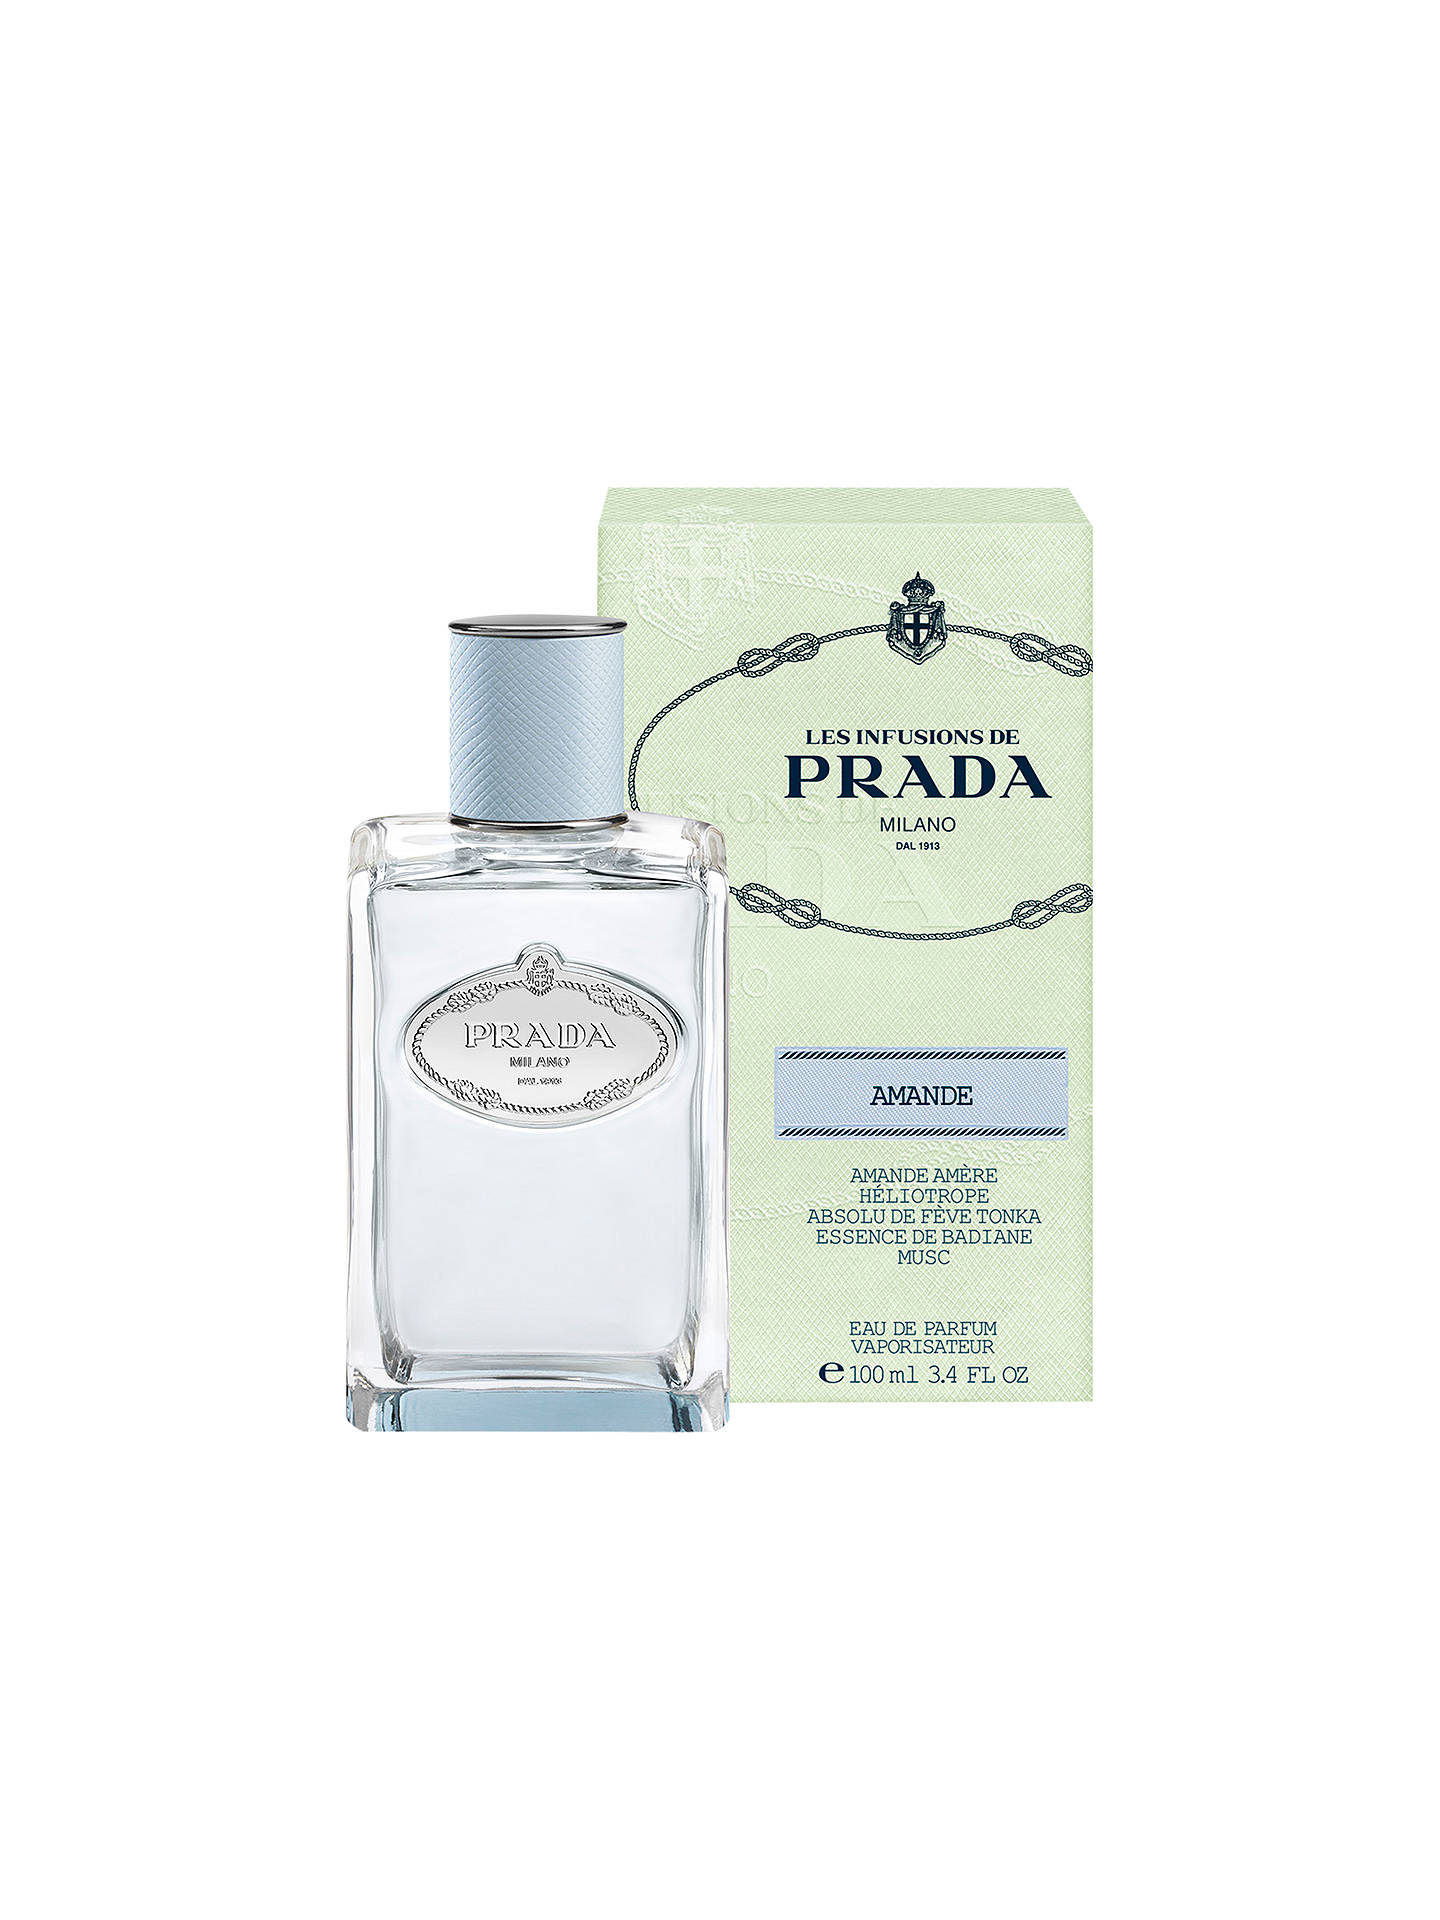 Buy Prada Les Infusions de Prada Amande Eau de Parfum, 100ml Online at johnlewis.com